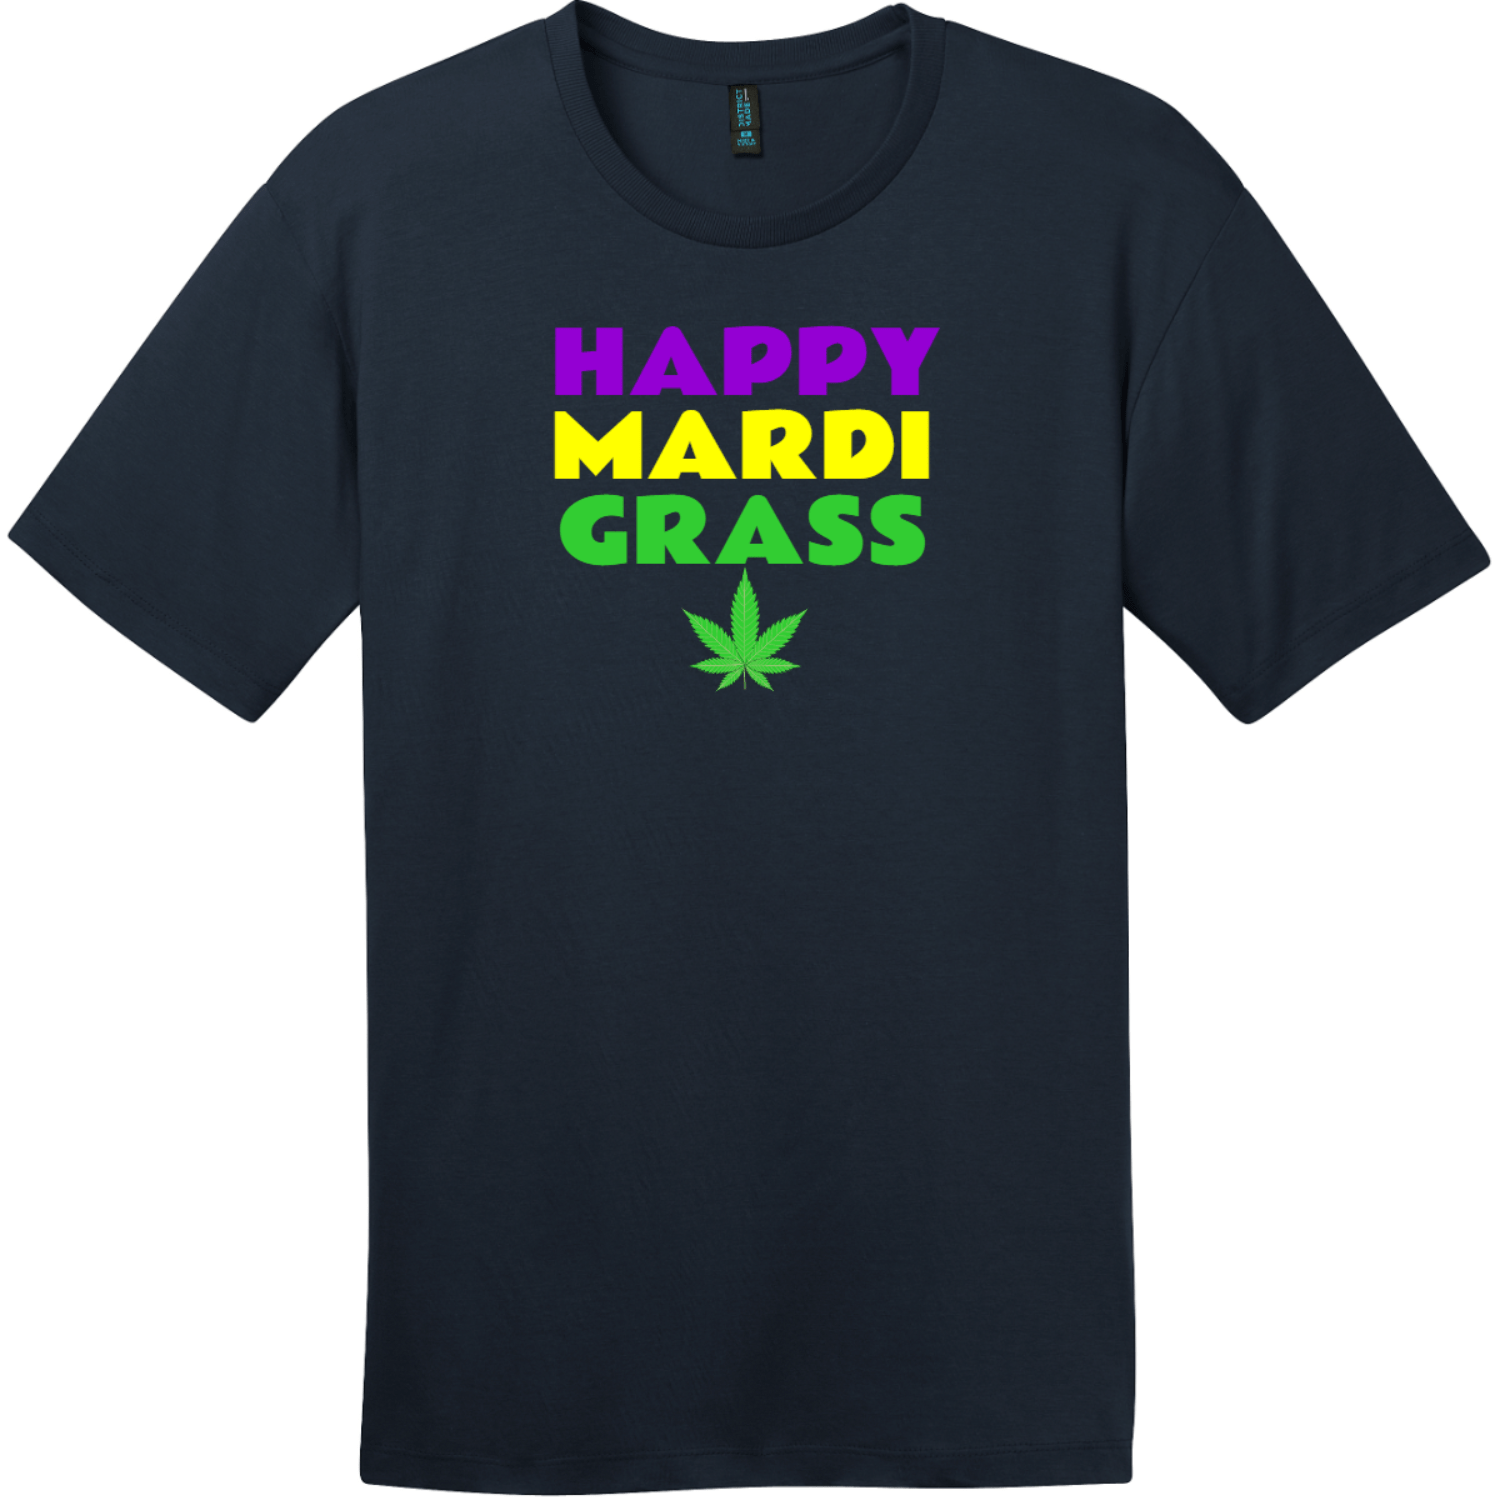 Happy Mardi Grass Weed T-Shirt New Navy District Perfect Weight Tee DT104